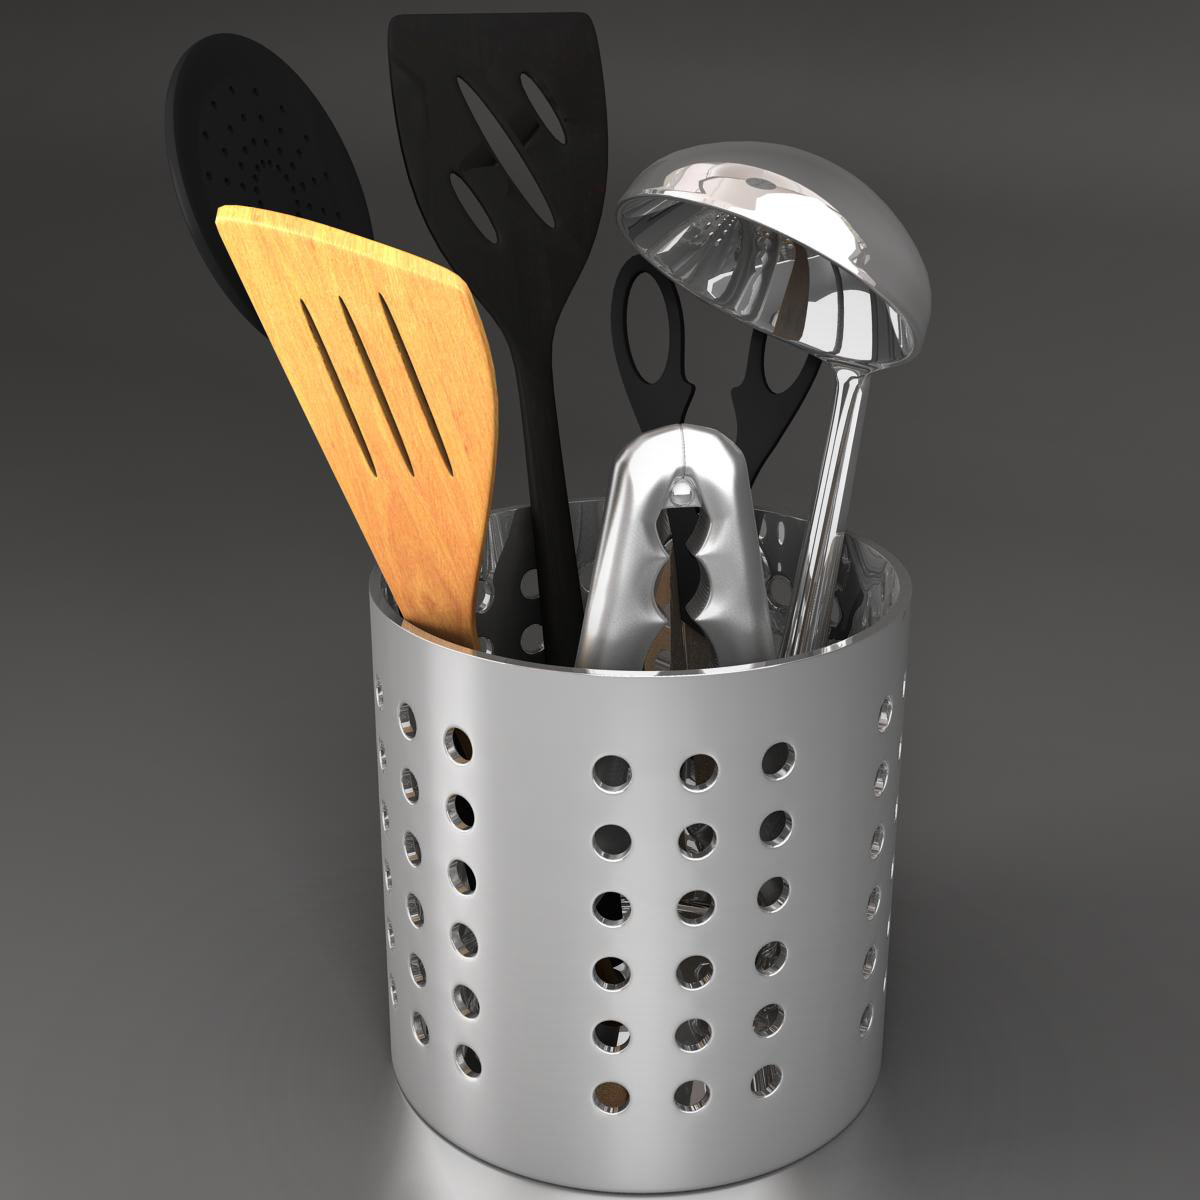 kitche utensils kit 3d model max fbx c4d ma mb obj 159289